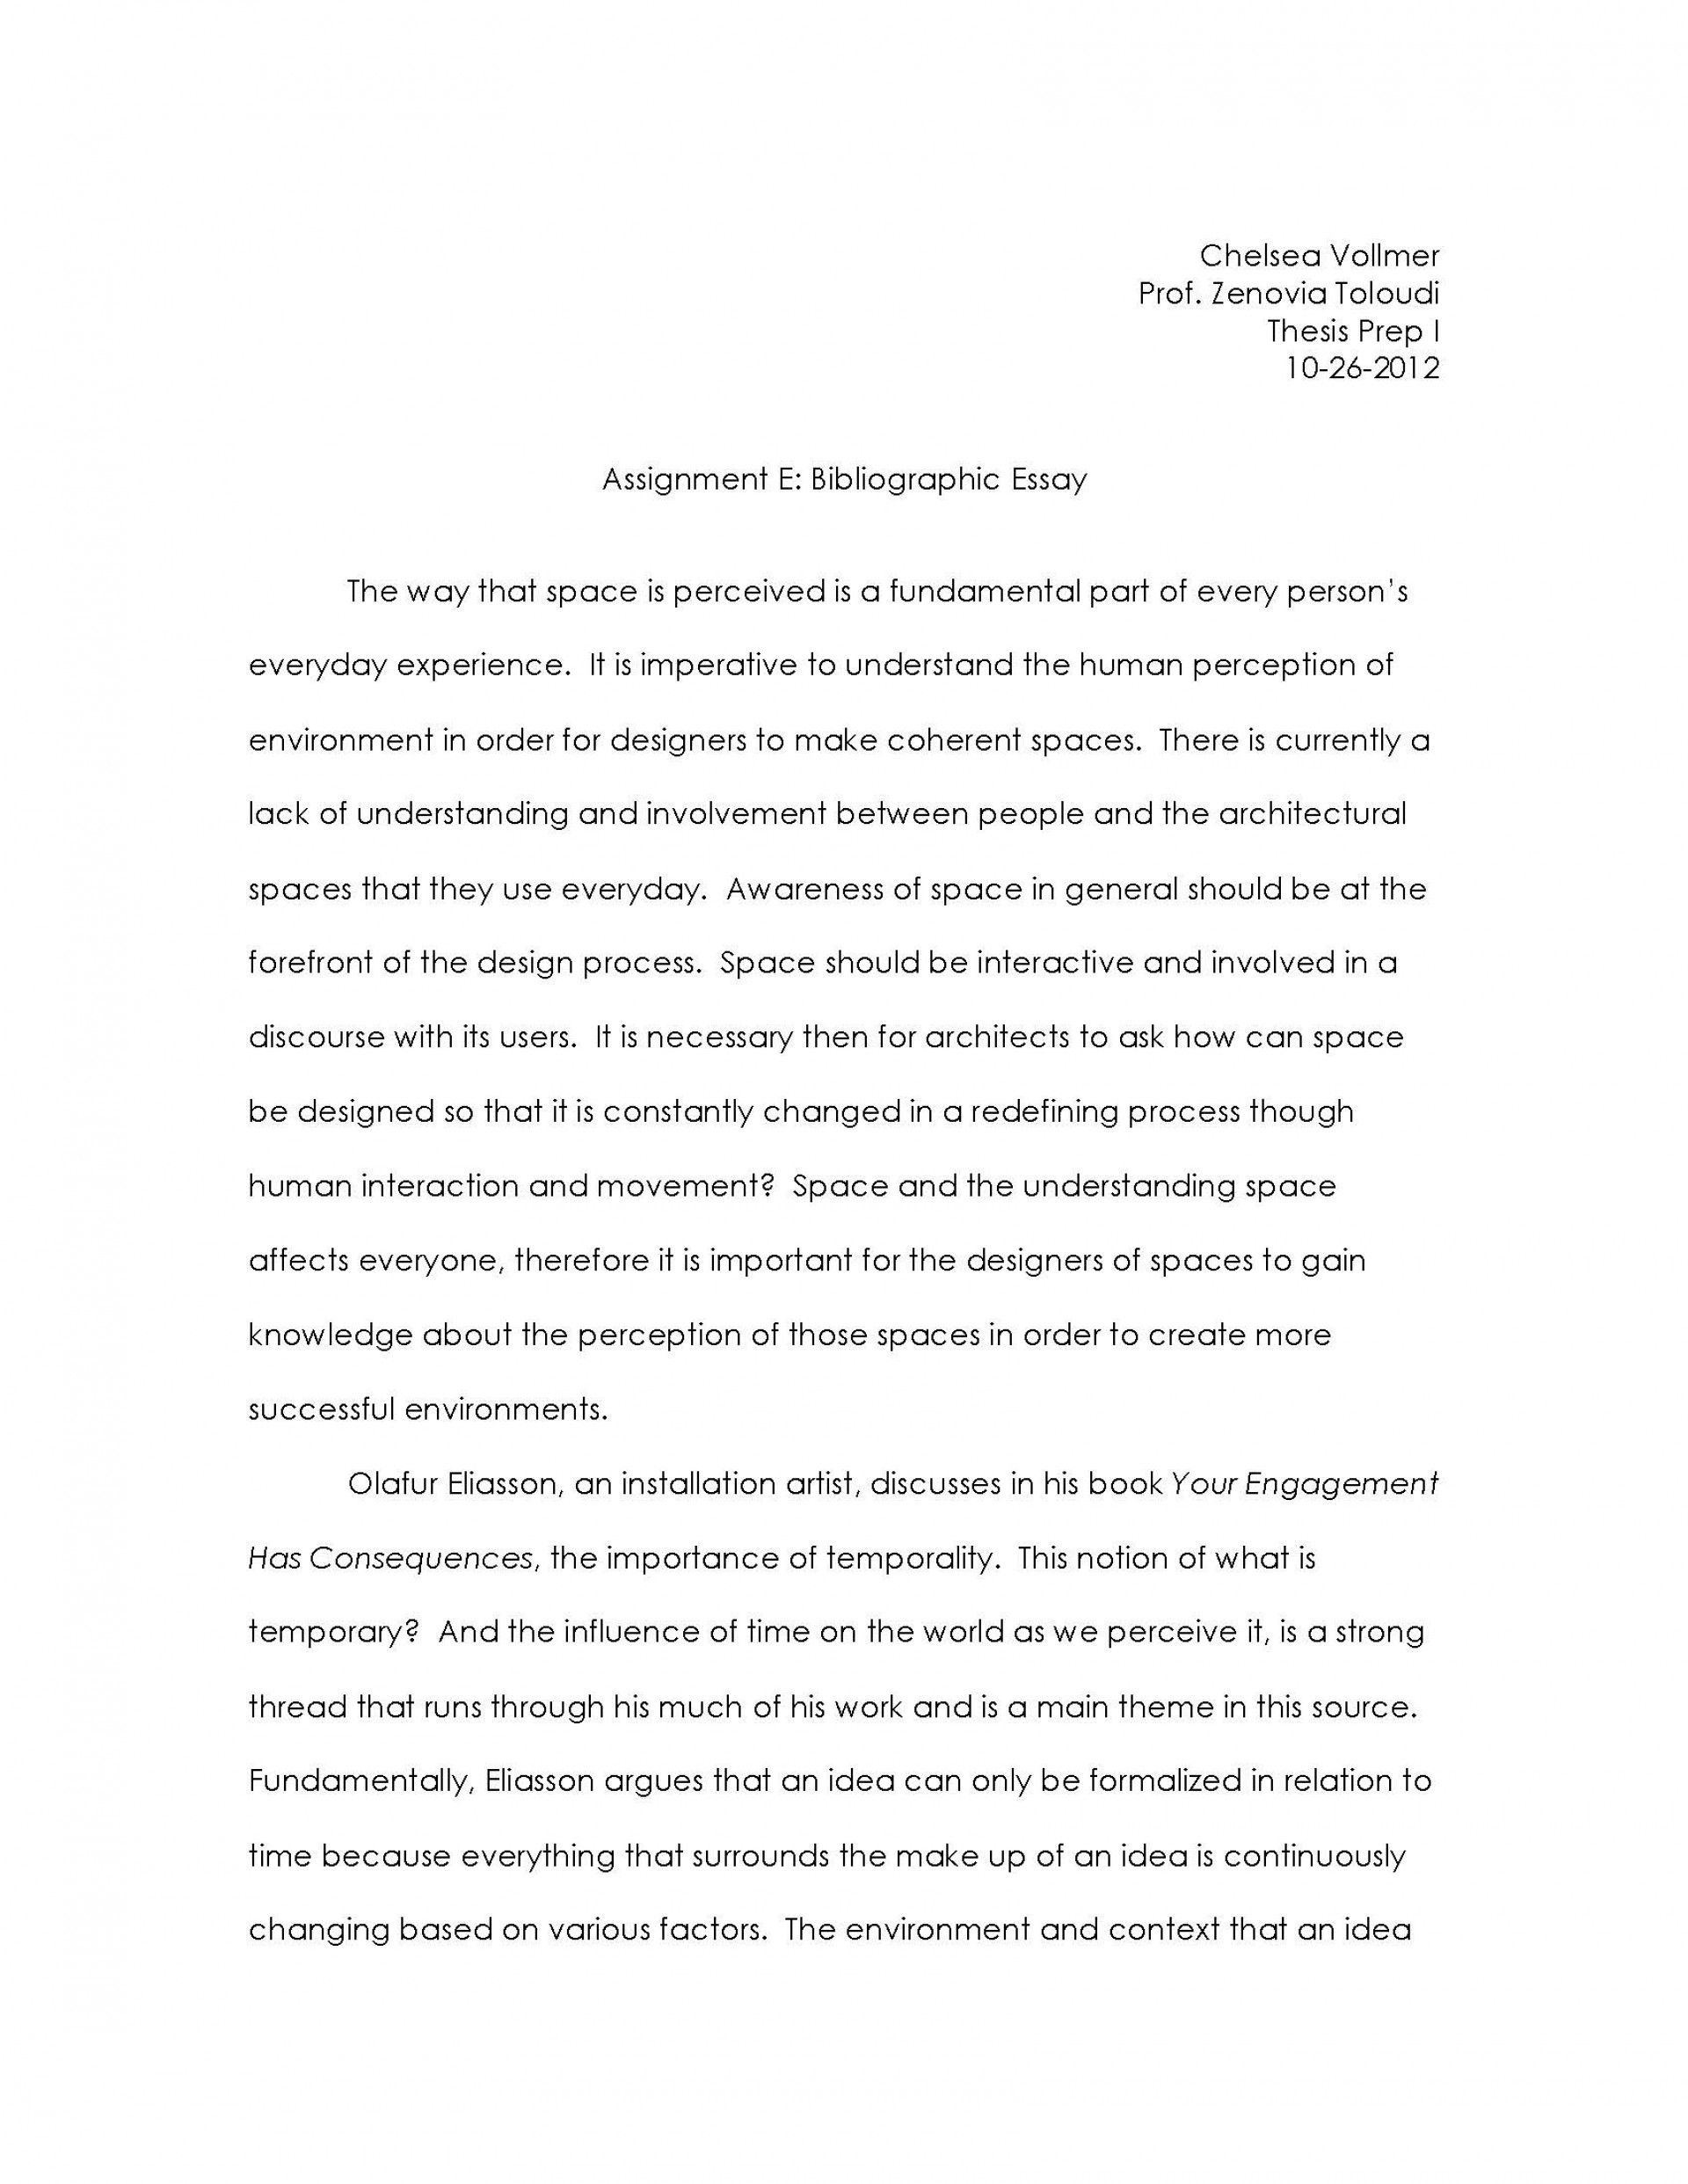 divorce arguments essay